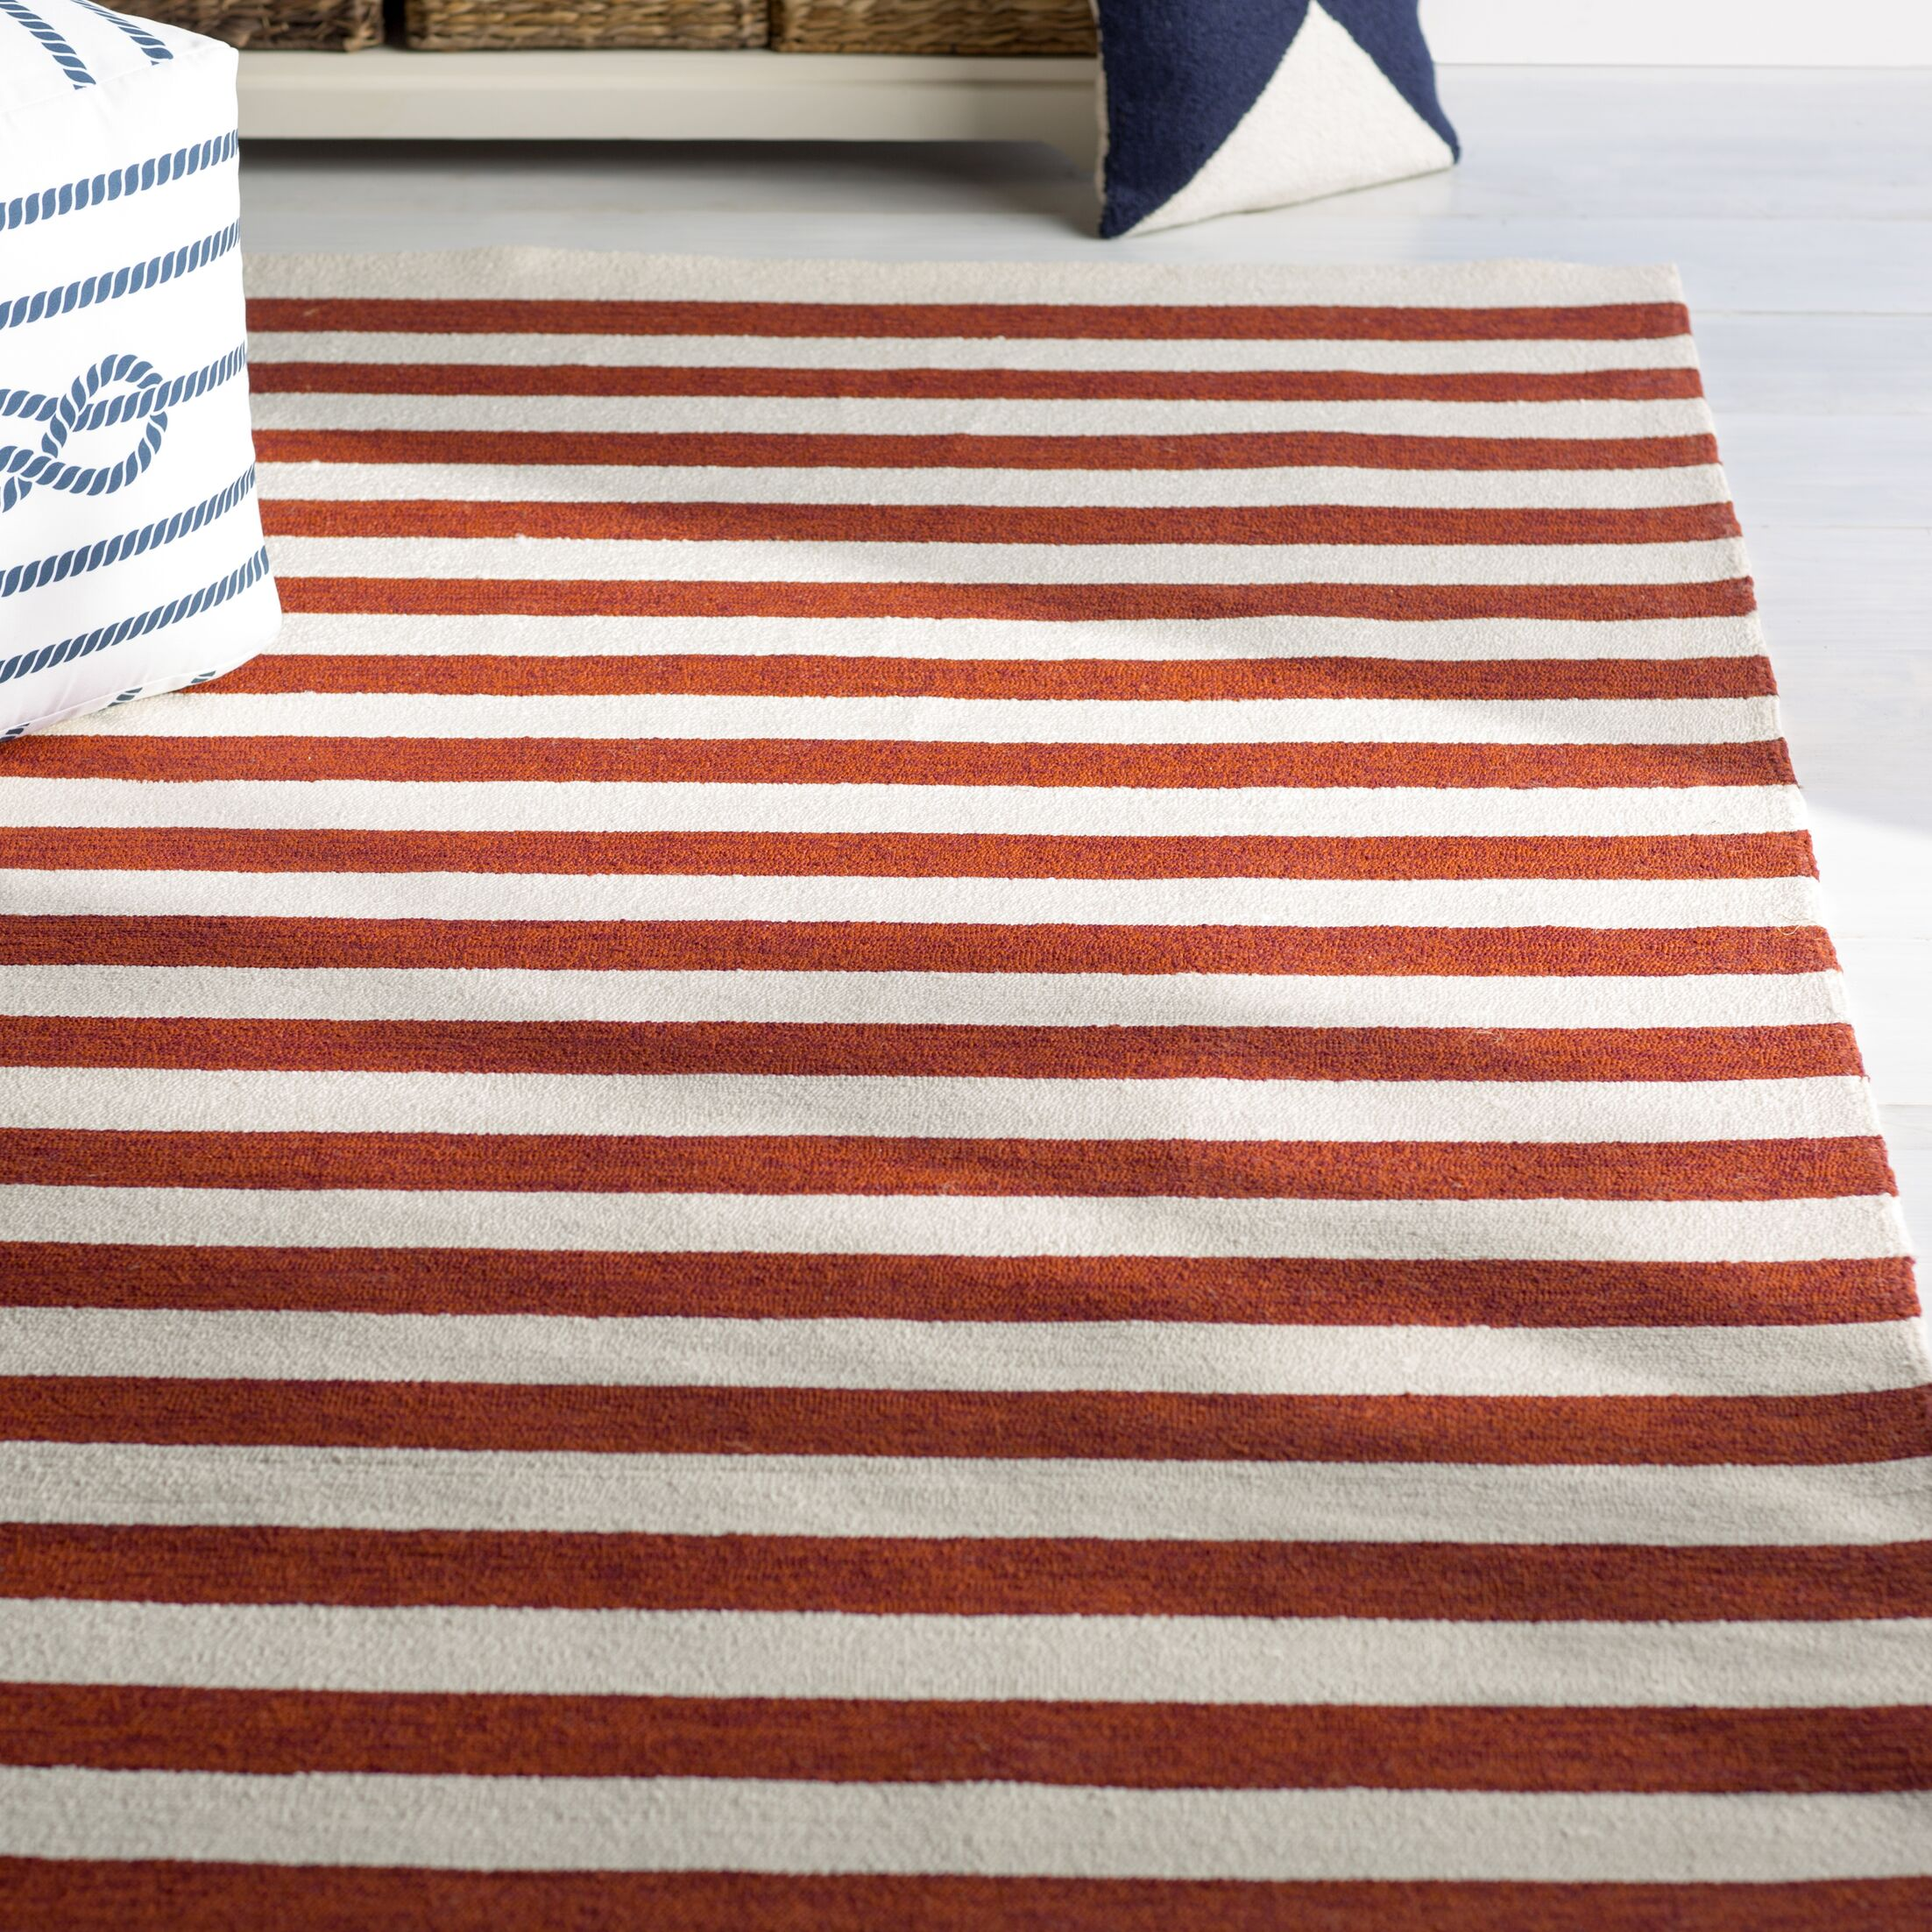 Suffield Red Indoor/Outdoor Area Rug Rug Size: Rectangle 9' x 12'